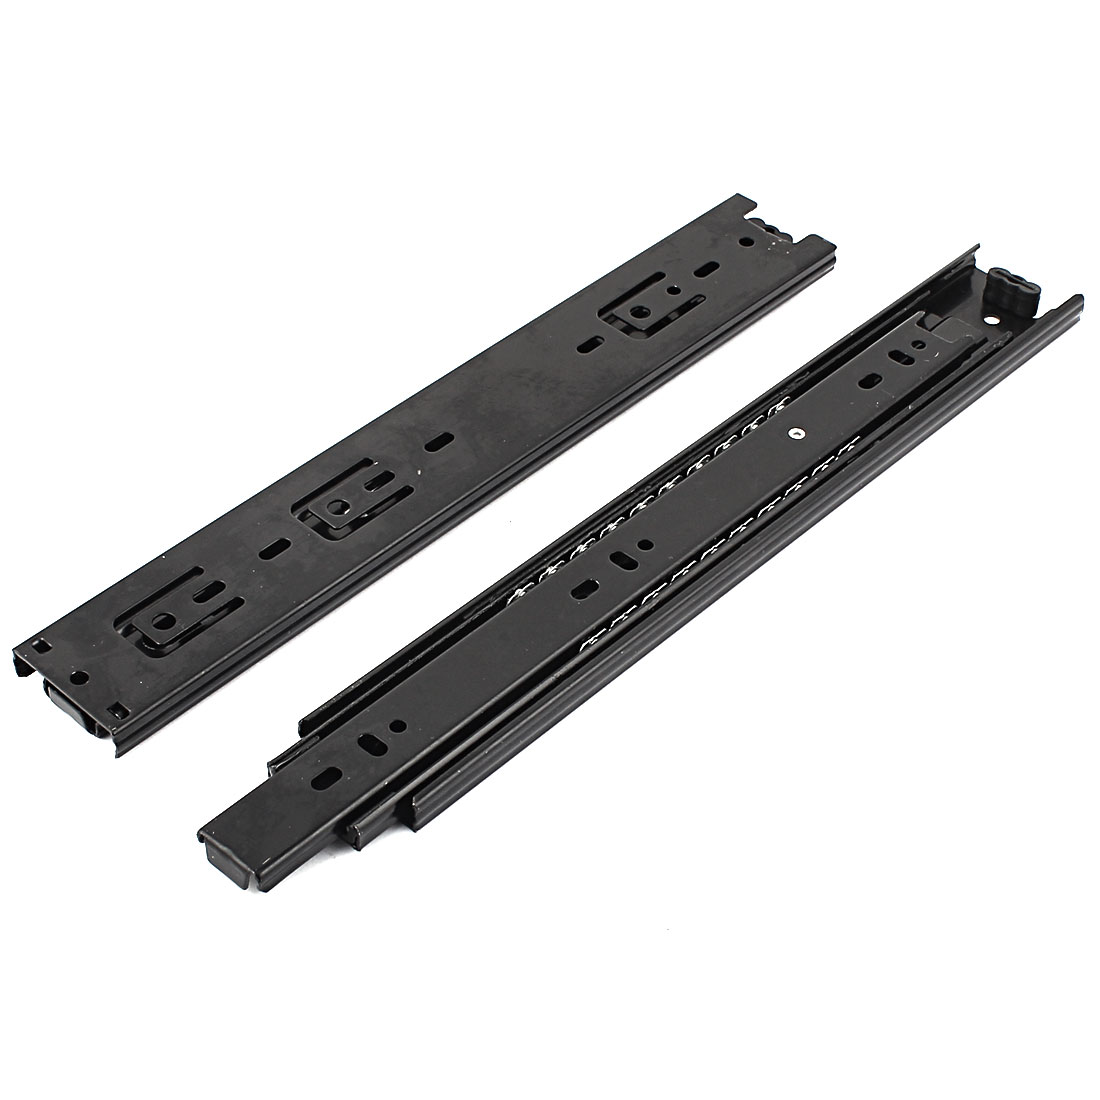 "12"" Length Ball Bearing Full Extension Damper Drawer Slide Rail Black Pair"